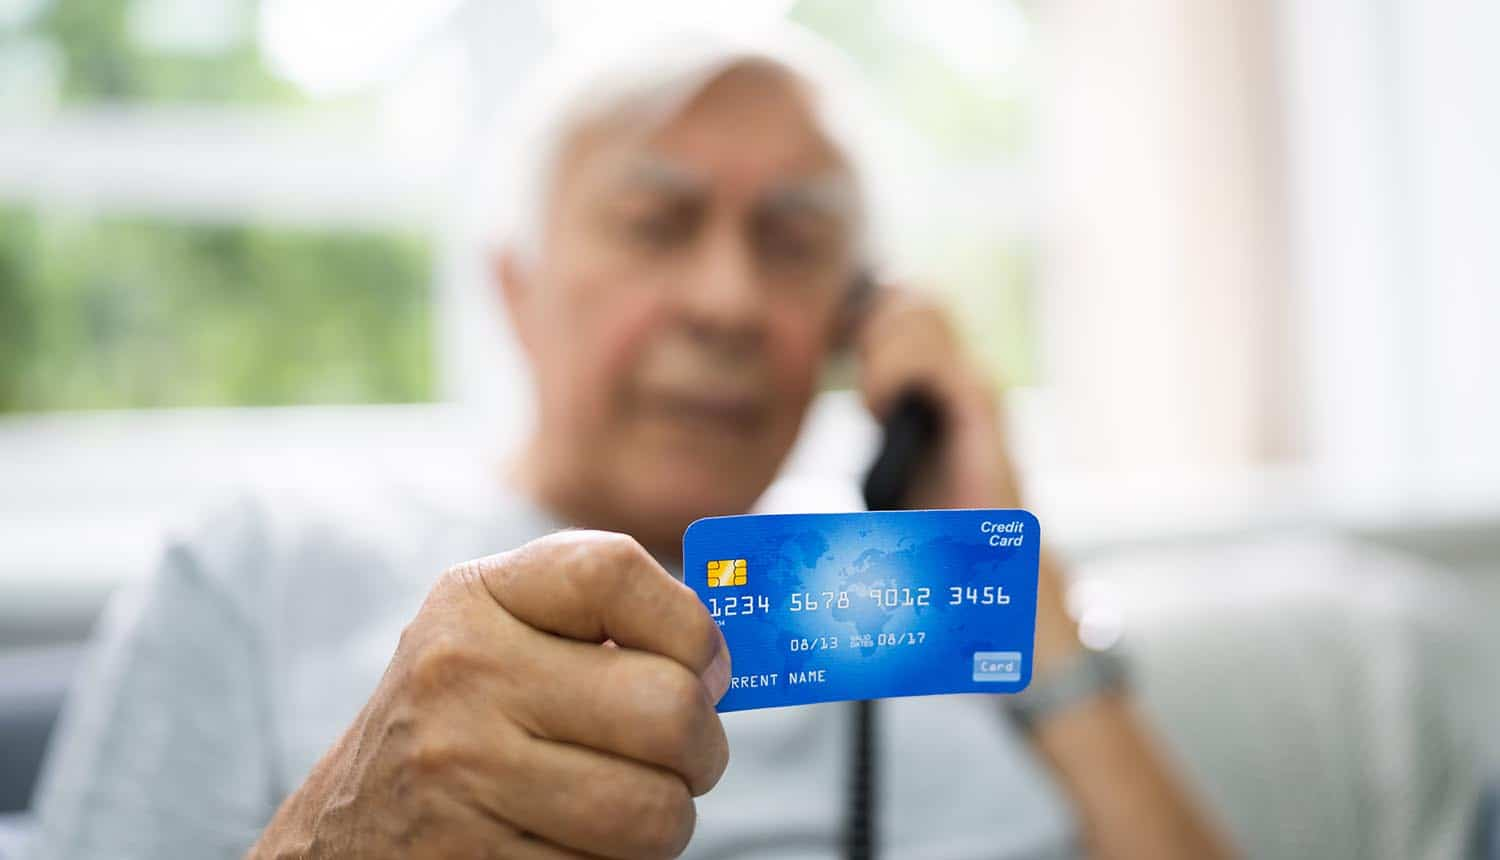 Elderly man holding credit card in scam call showing cost of fraud